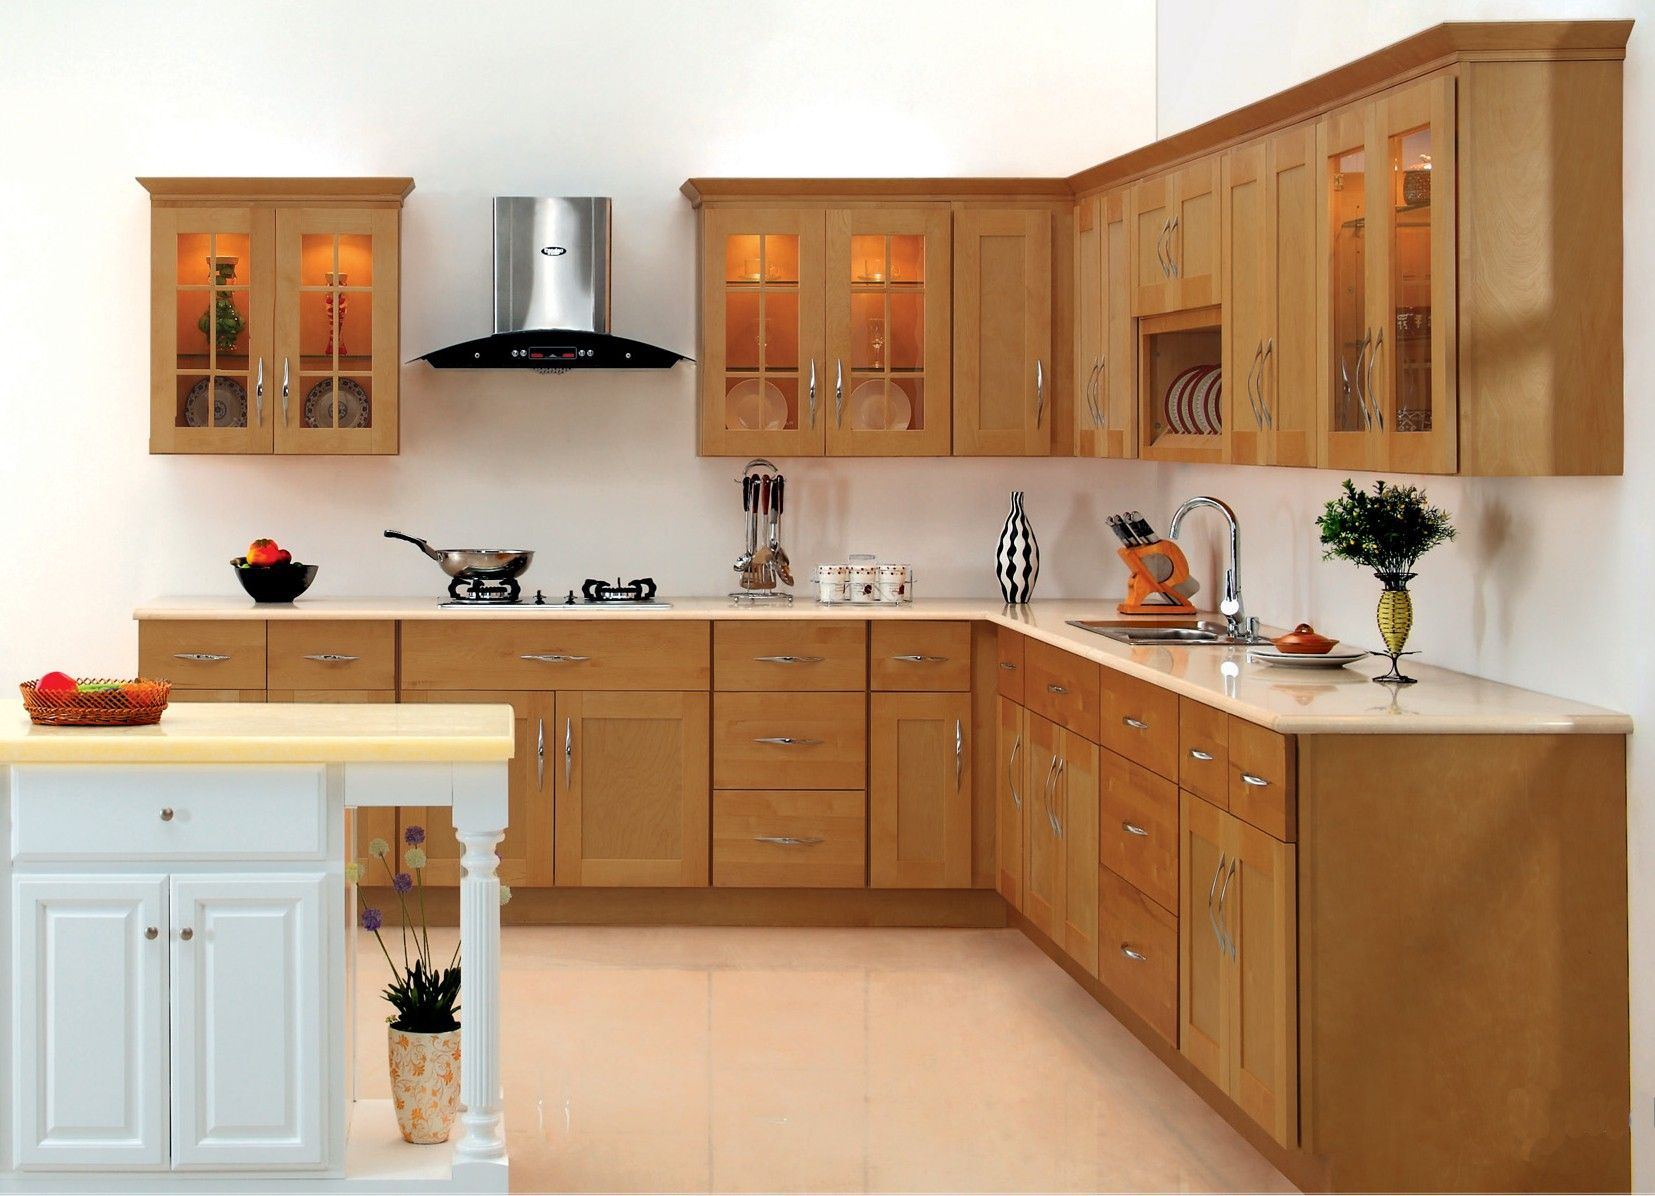 Thomasvillekitchencabinetslightbrownwoodendetaildesign Mesmerizing Design Of Kitchen Cabinets Inspiration Design